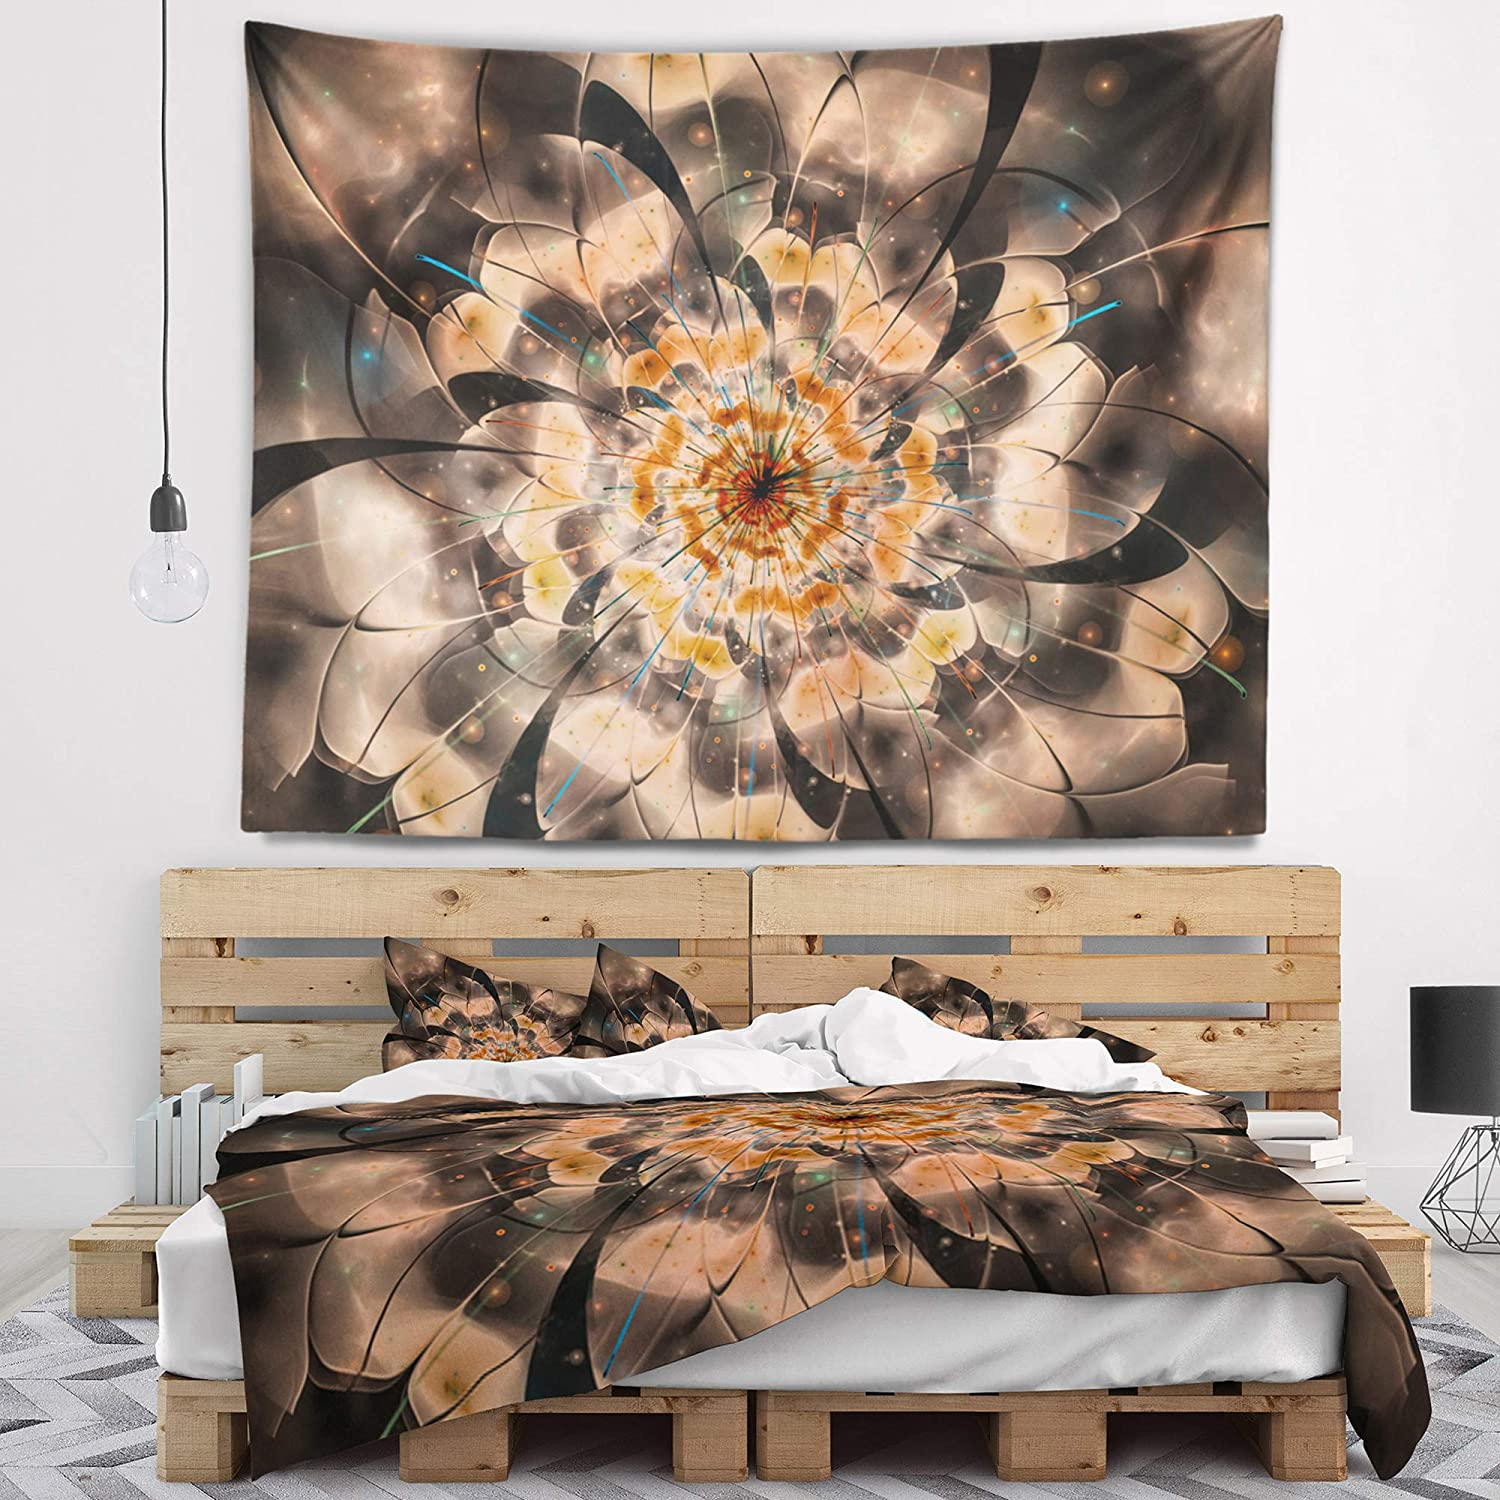 39 x 32 Designart TAP12153-39-32  Brown Fractal Flower Petals Close up Floral Blanket D/écor Art for Home and Office Wall Tapestry Medium